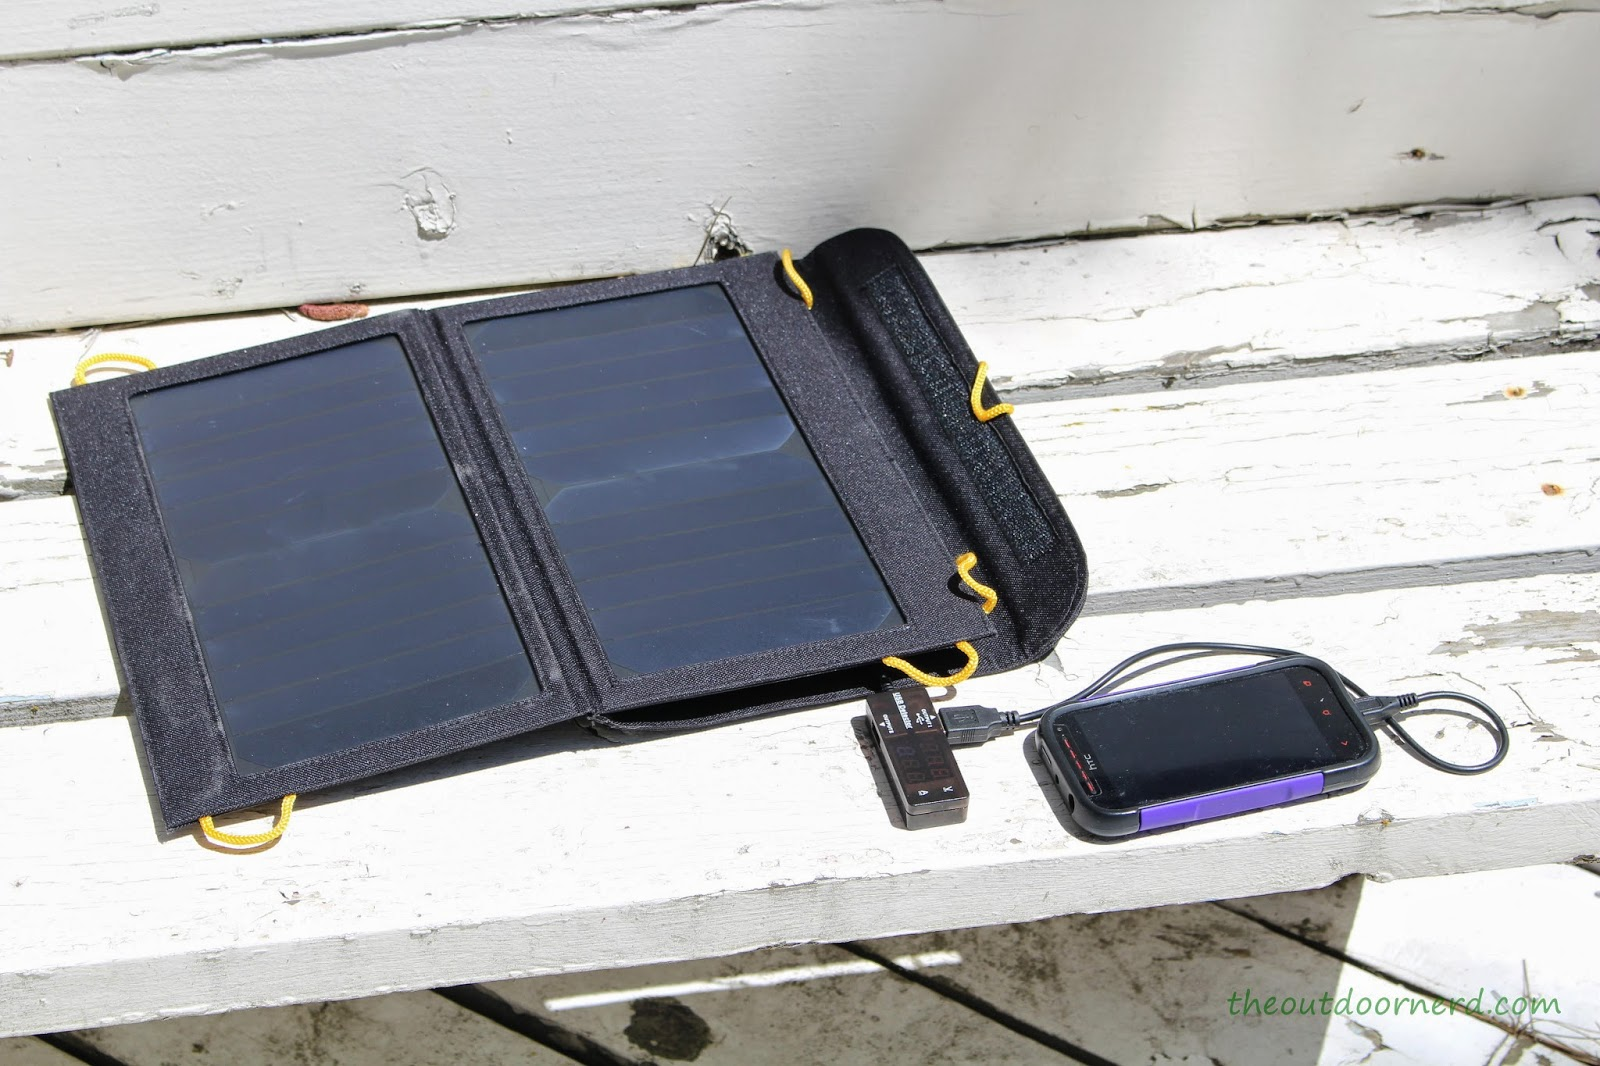 Levin Sol-Wing 13W Solar USB Charger: Test 1: Smart Phone